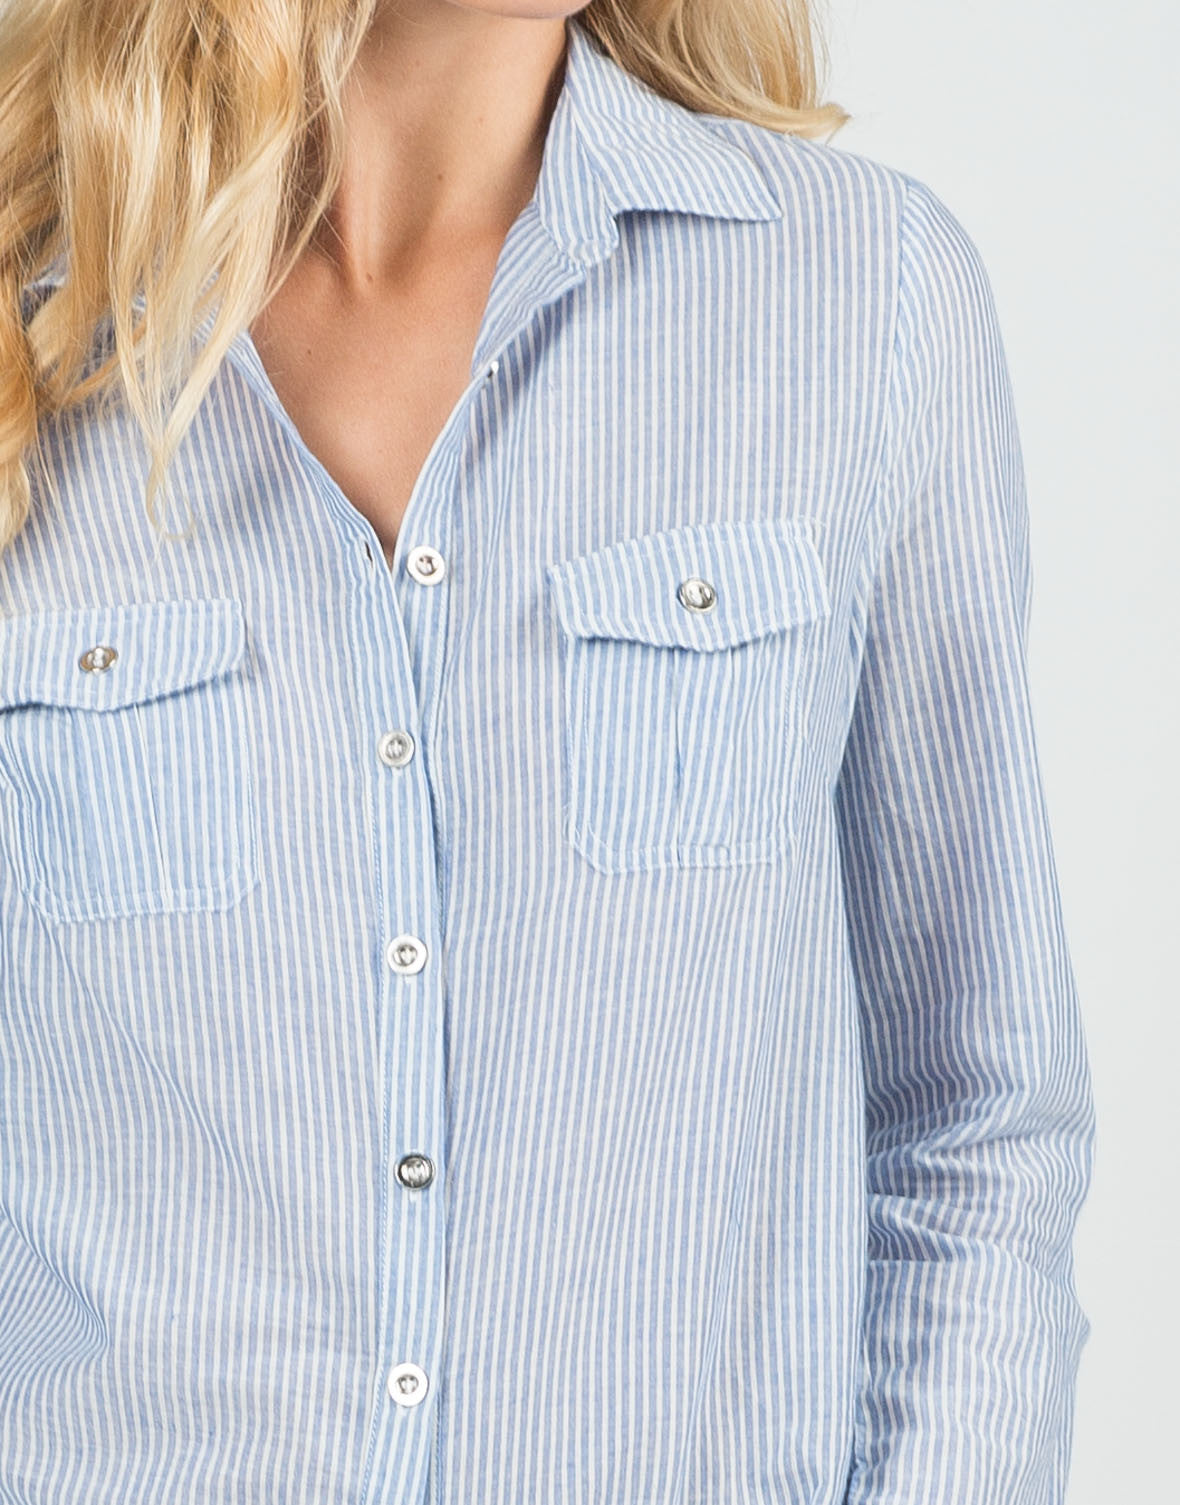 Detail of Pin Striped Button Up Blouse